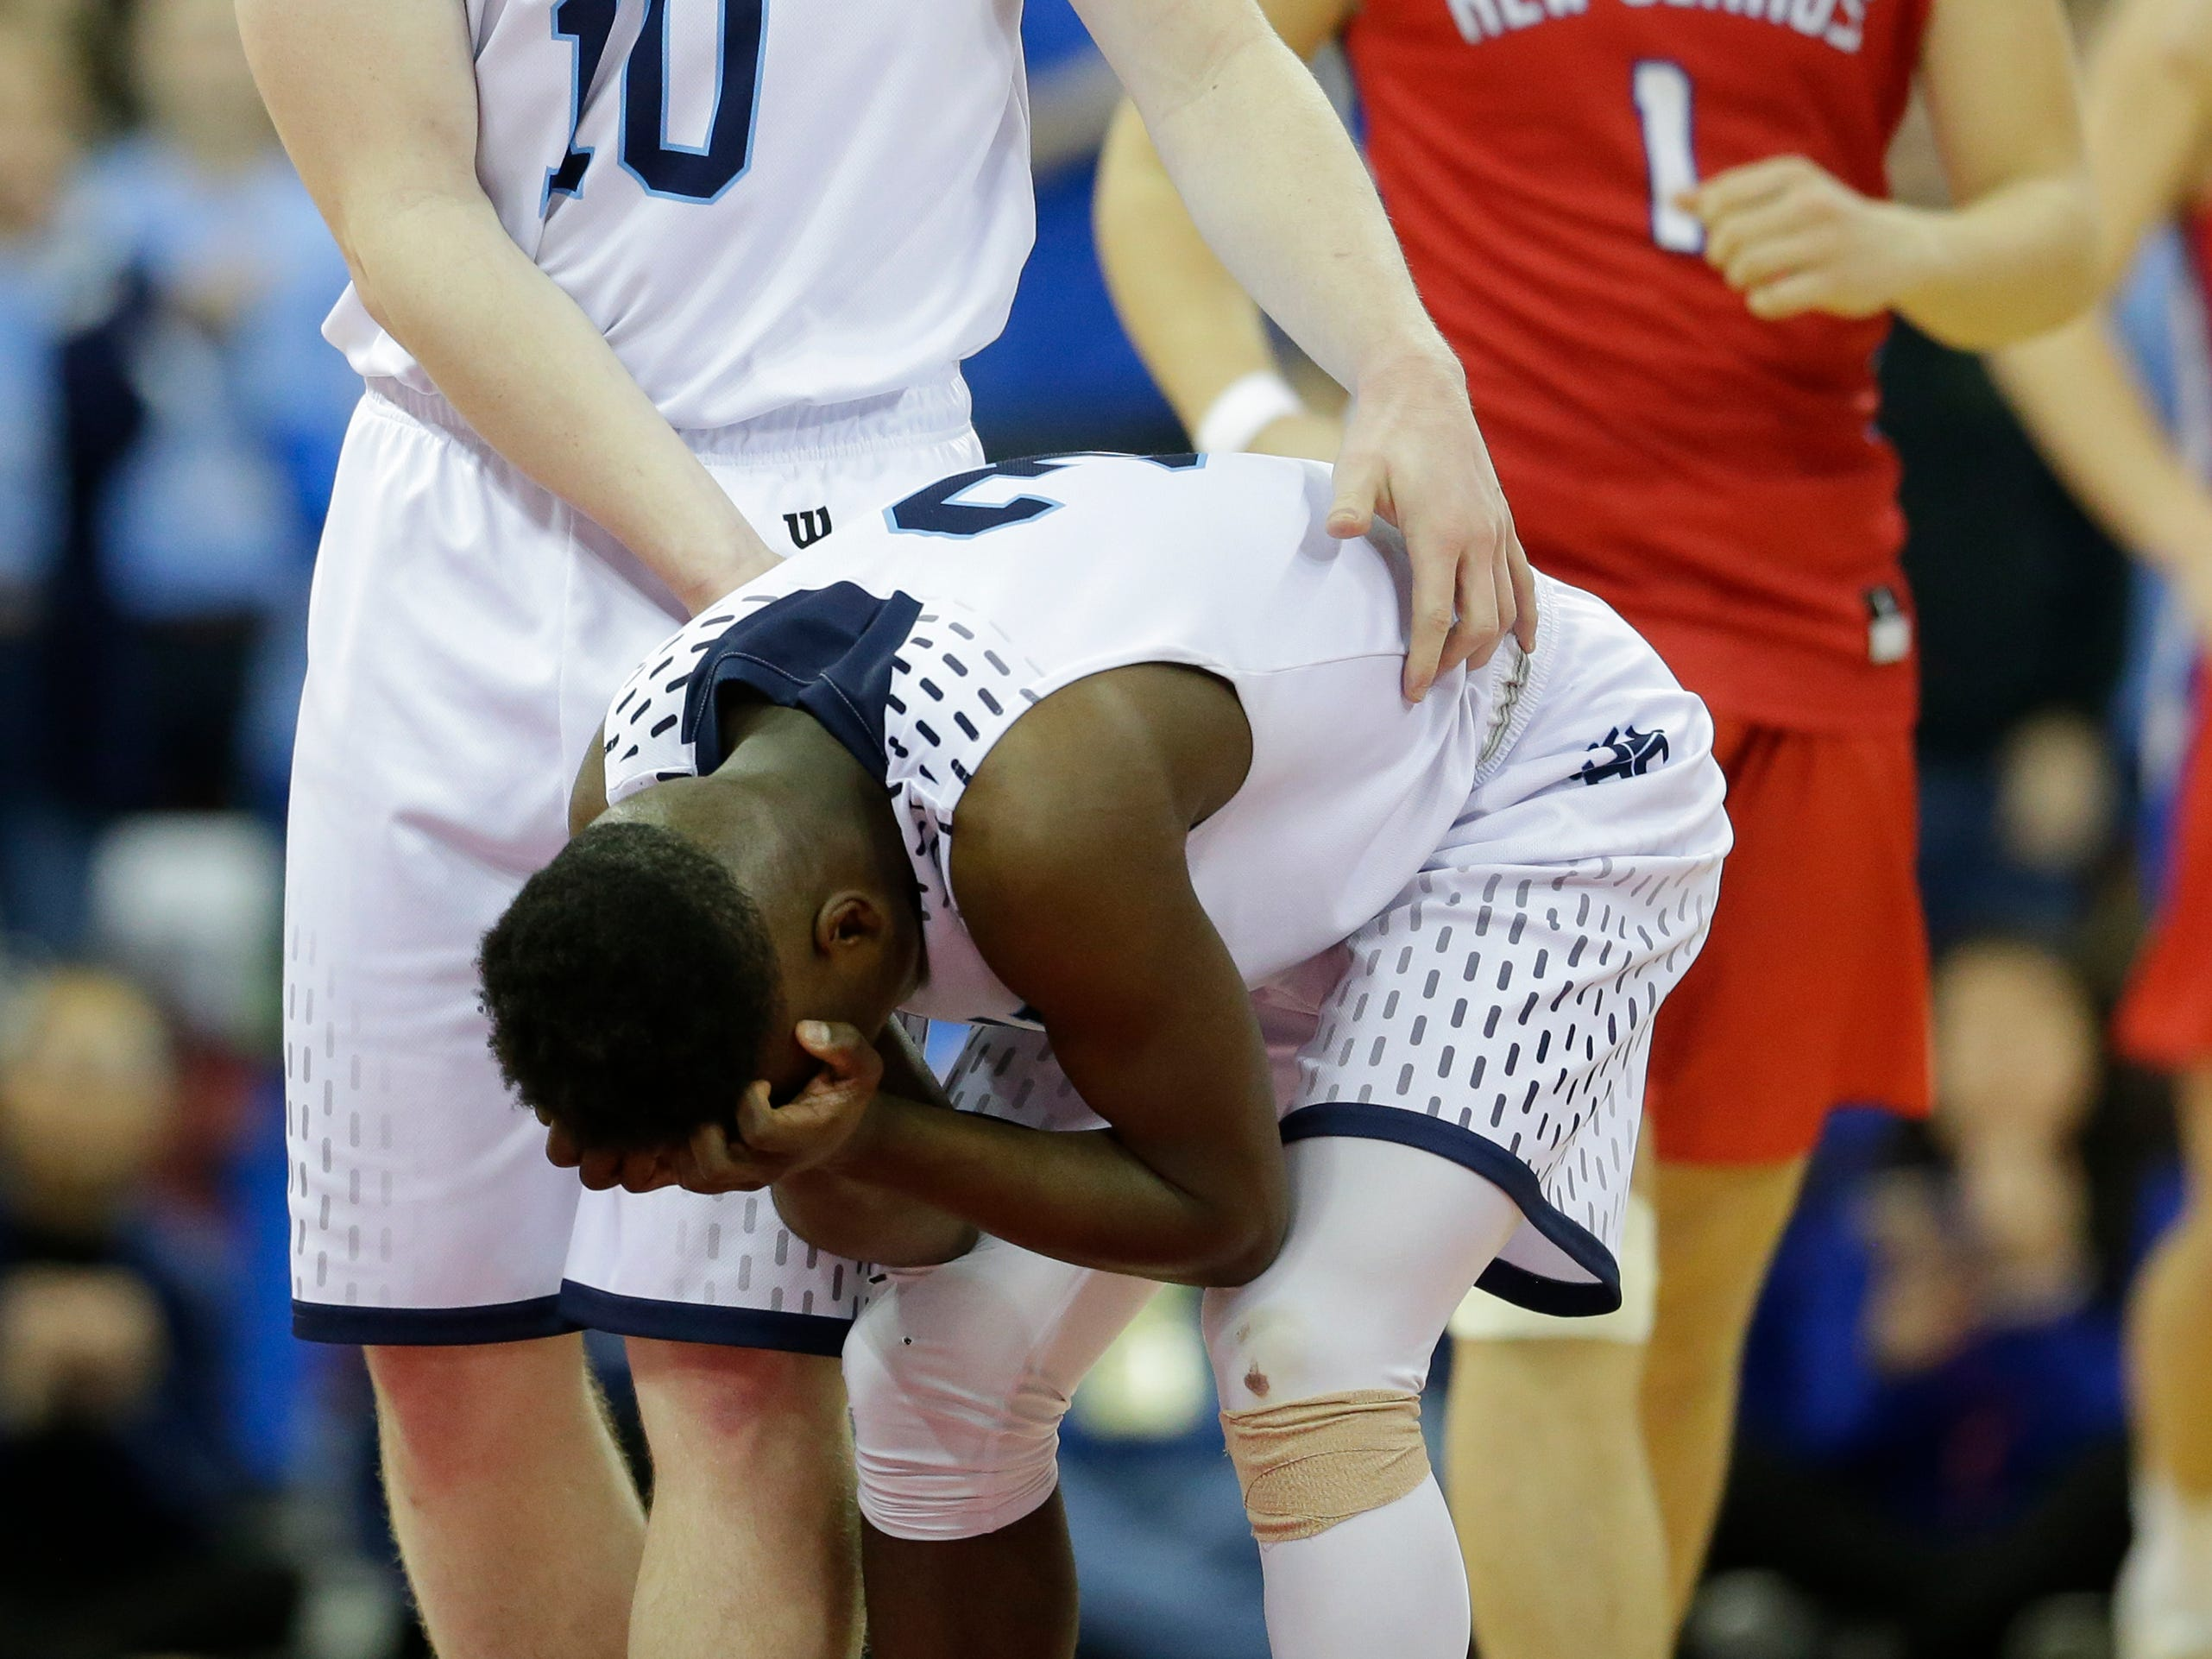 Roncalli High School's Matthew Le Vene (10) consoles teammate Chombi Lambert (3) after he misses a shot that would've put the Jets in the lead against New Glarus High School in final minute oftheir WIAA Division 4 boys basketball state semifinal at the Kohl Center Thursday, March 14, 2019, in Madison, Wis. New Glarus defeated Roncalli 44-41.